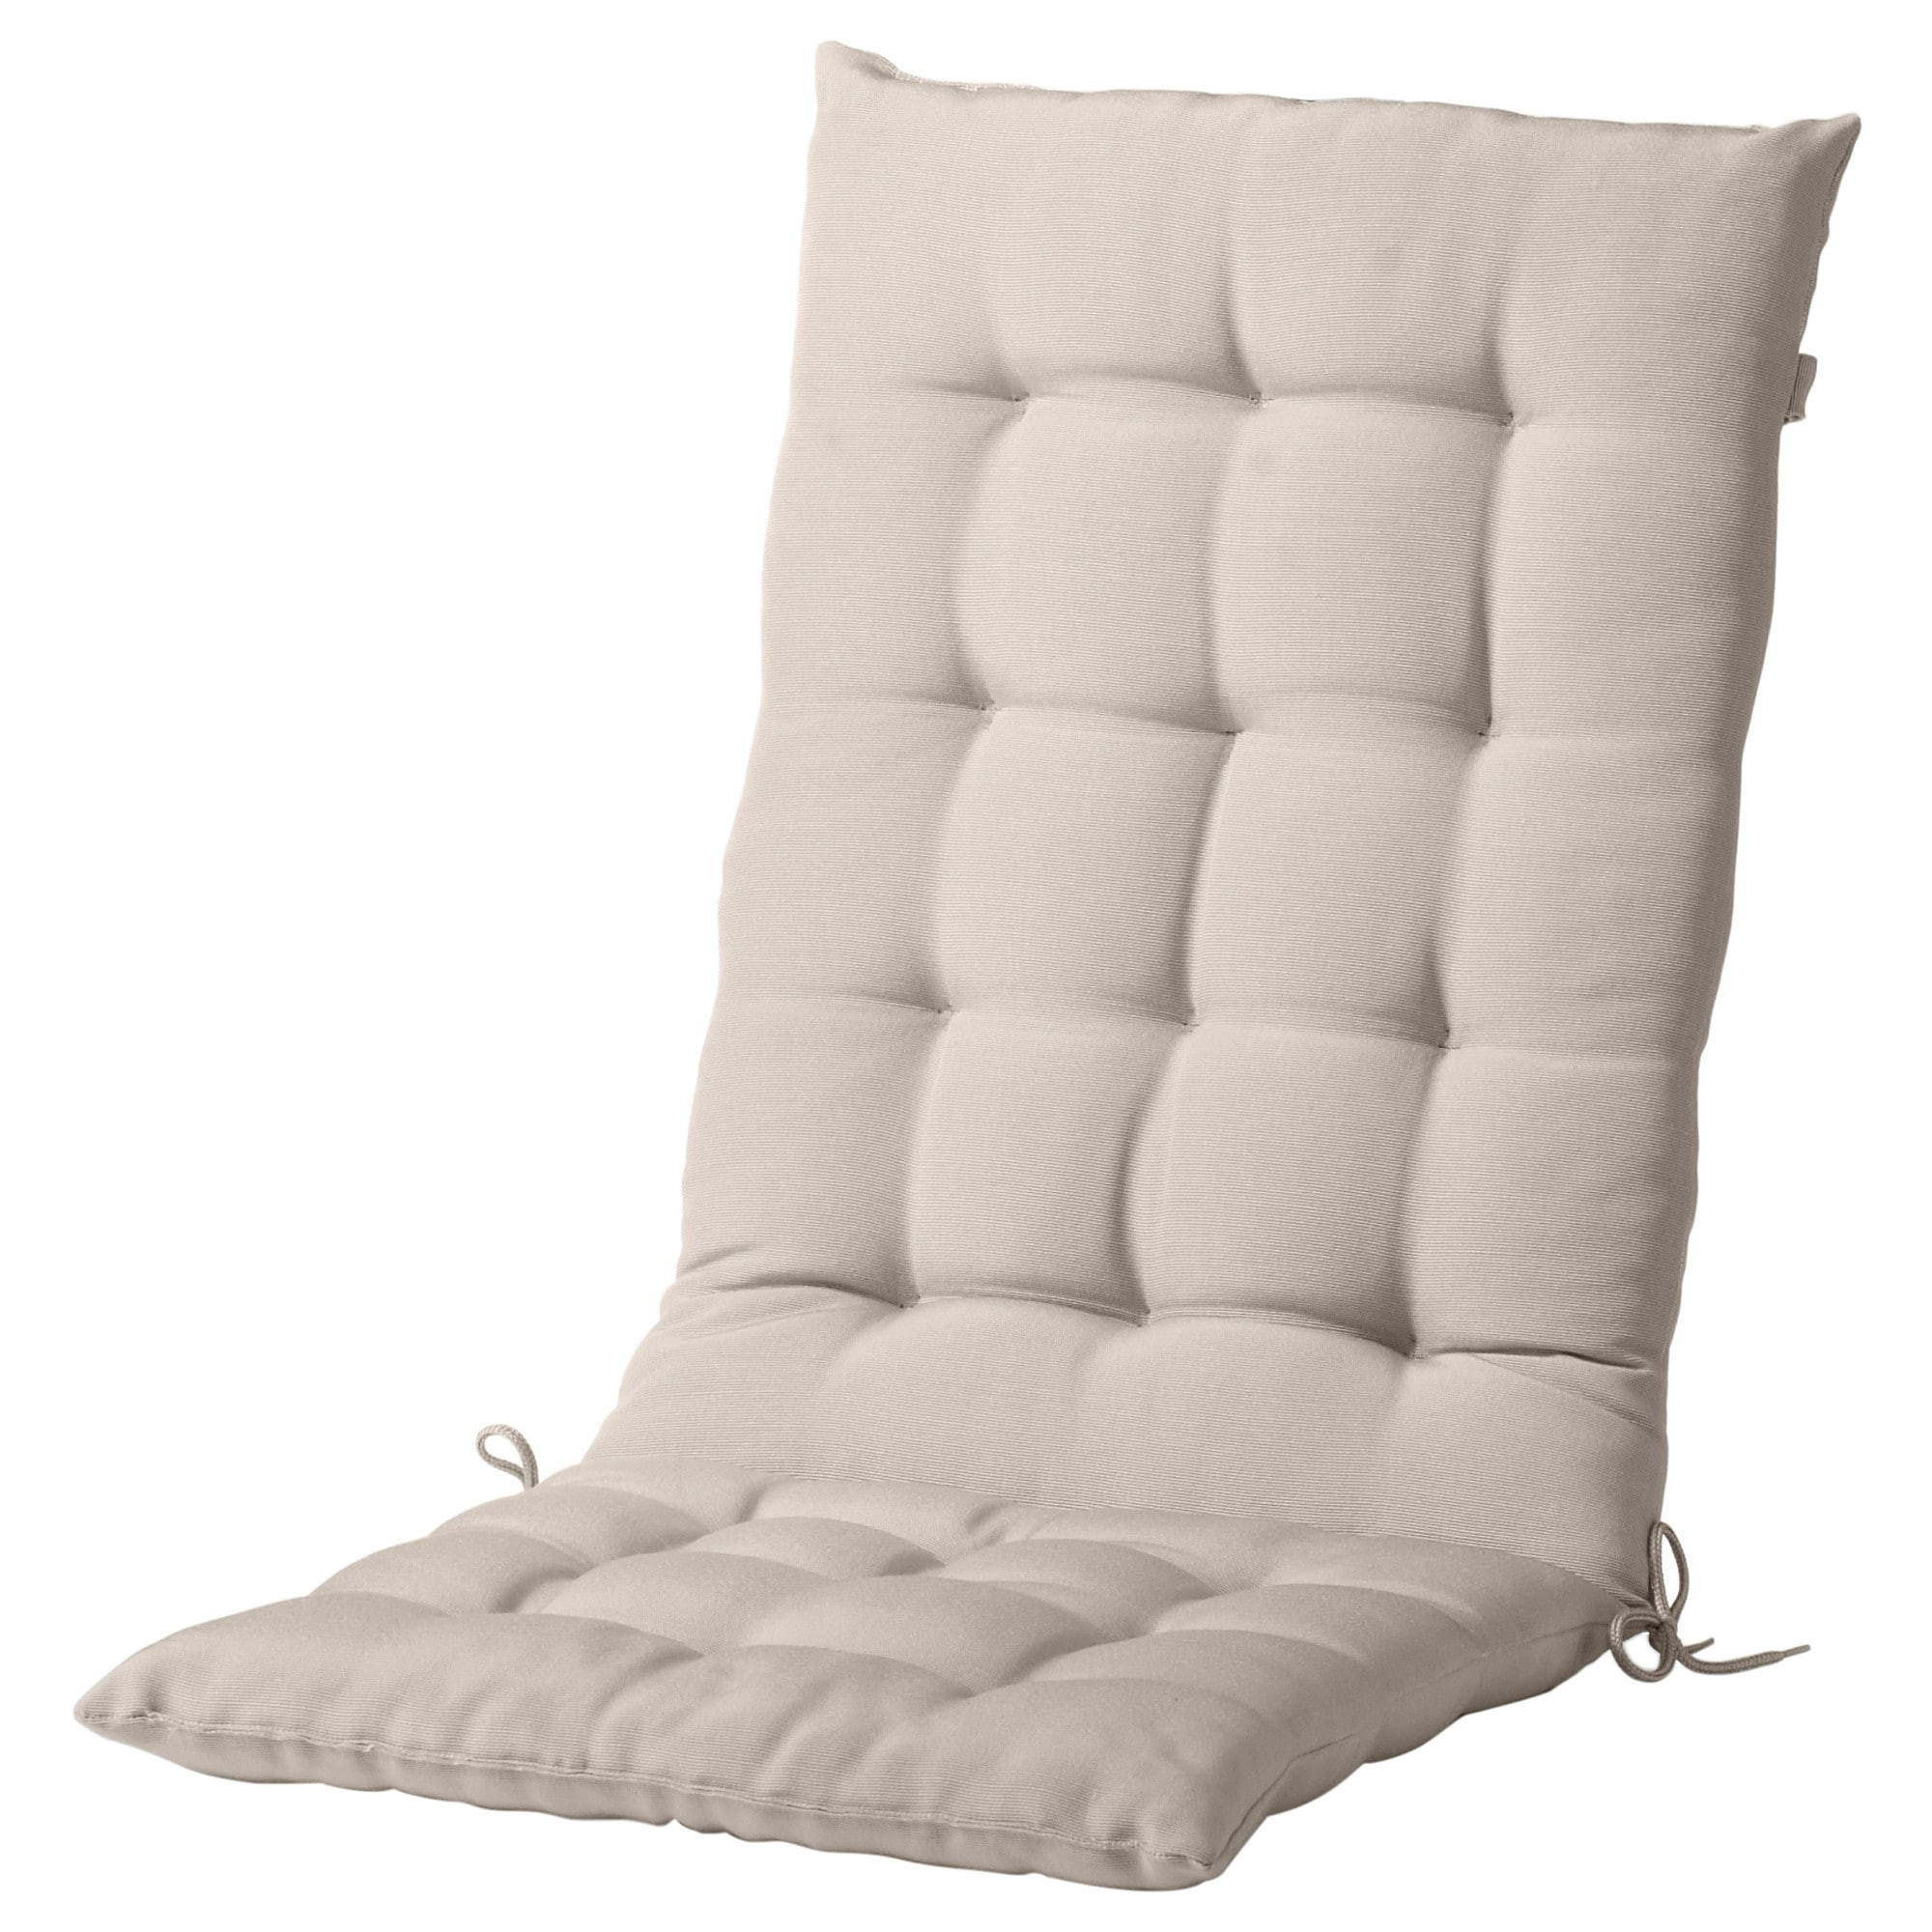 Best ideas about Outdoor Seat Cushions . Save or Pin Outdoor Cushions & Garden Cushions Now.